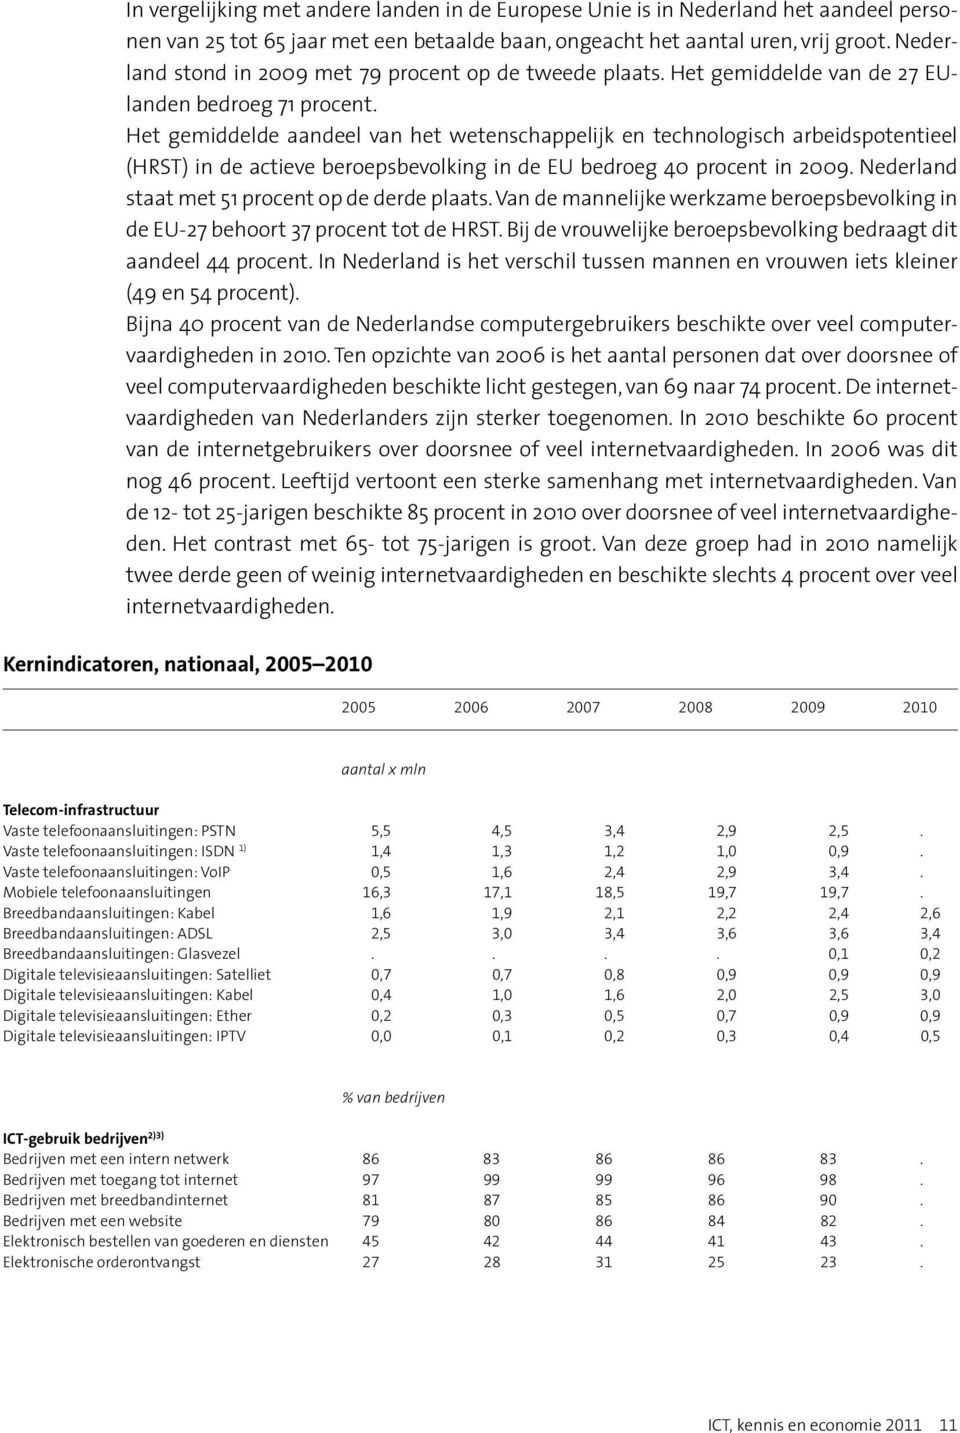 Het gemiddelde aandeel van het wetenschappelijk en technologisch arbeidspotentieel (HRST) in de actieve beroepsbevolking in de EU bedroeg 40 procent in 2009.